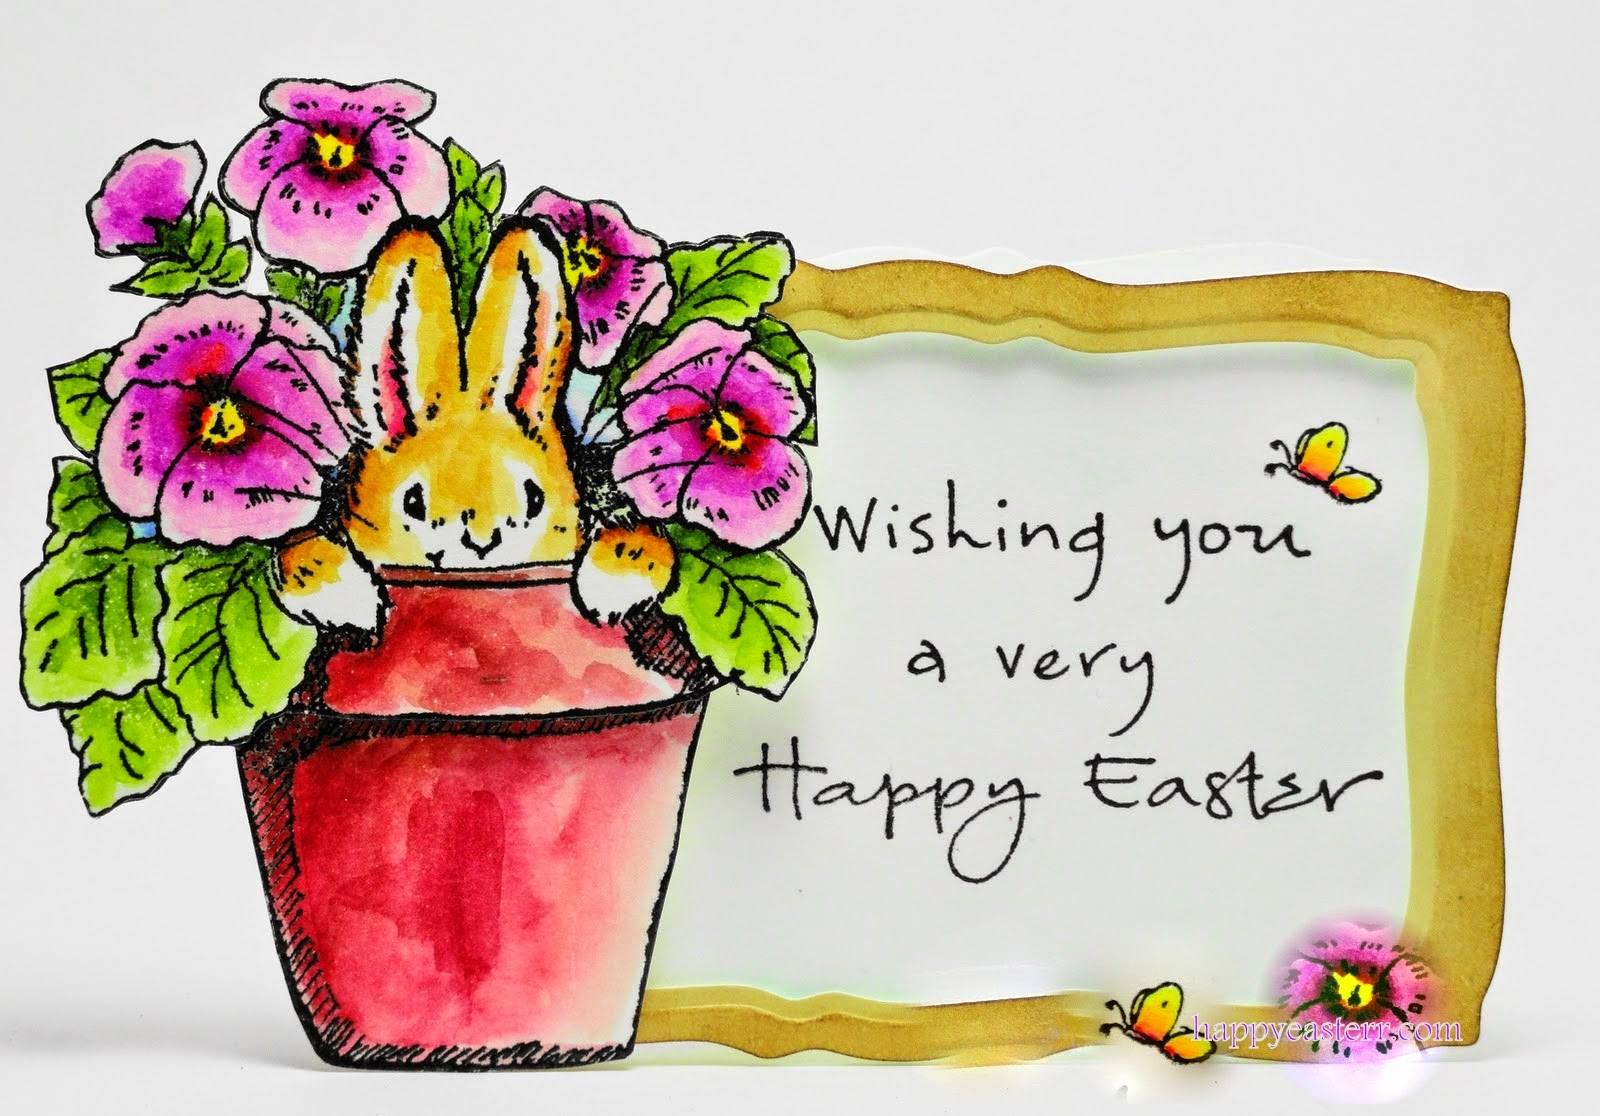 Happy-Easter-greeting-wishes-in-Different-Languages